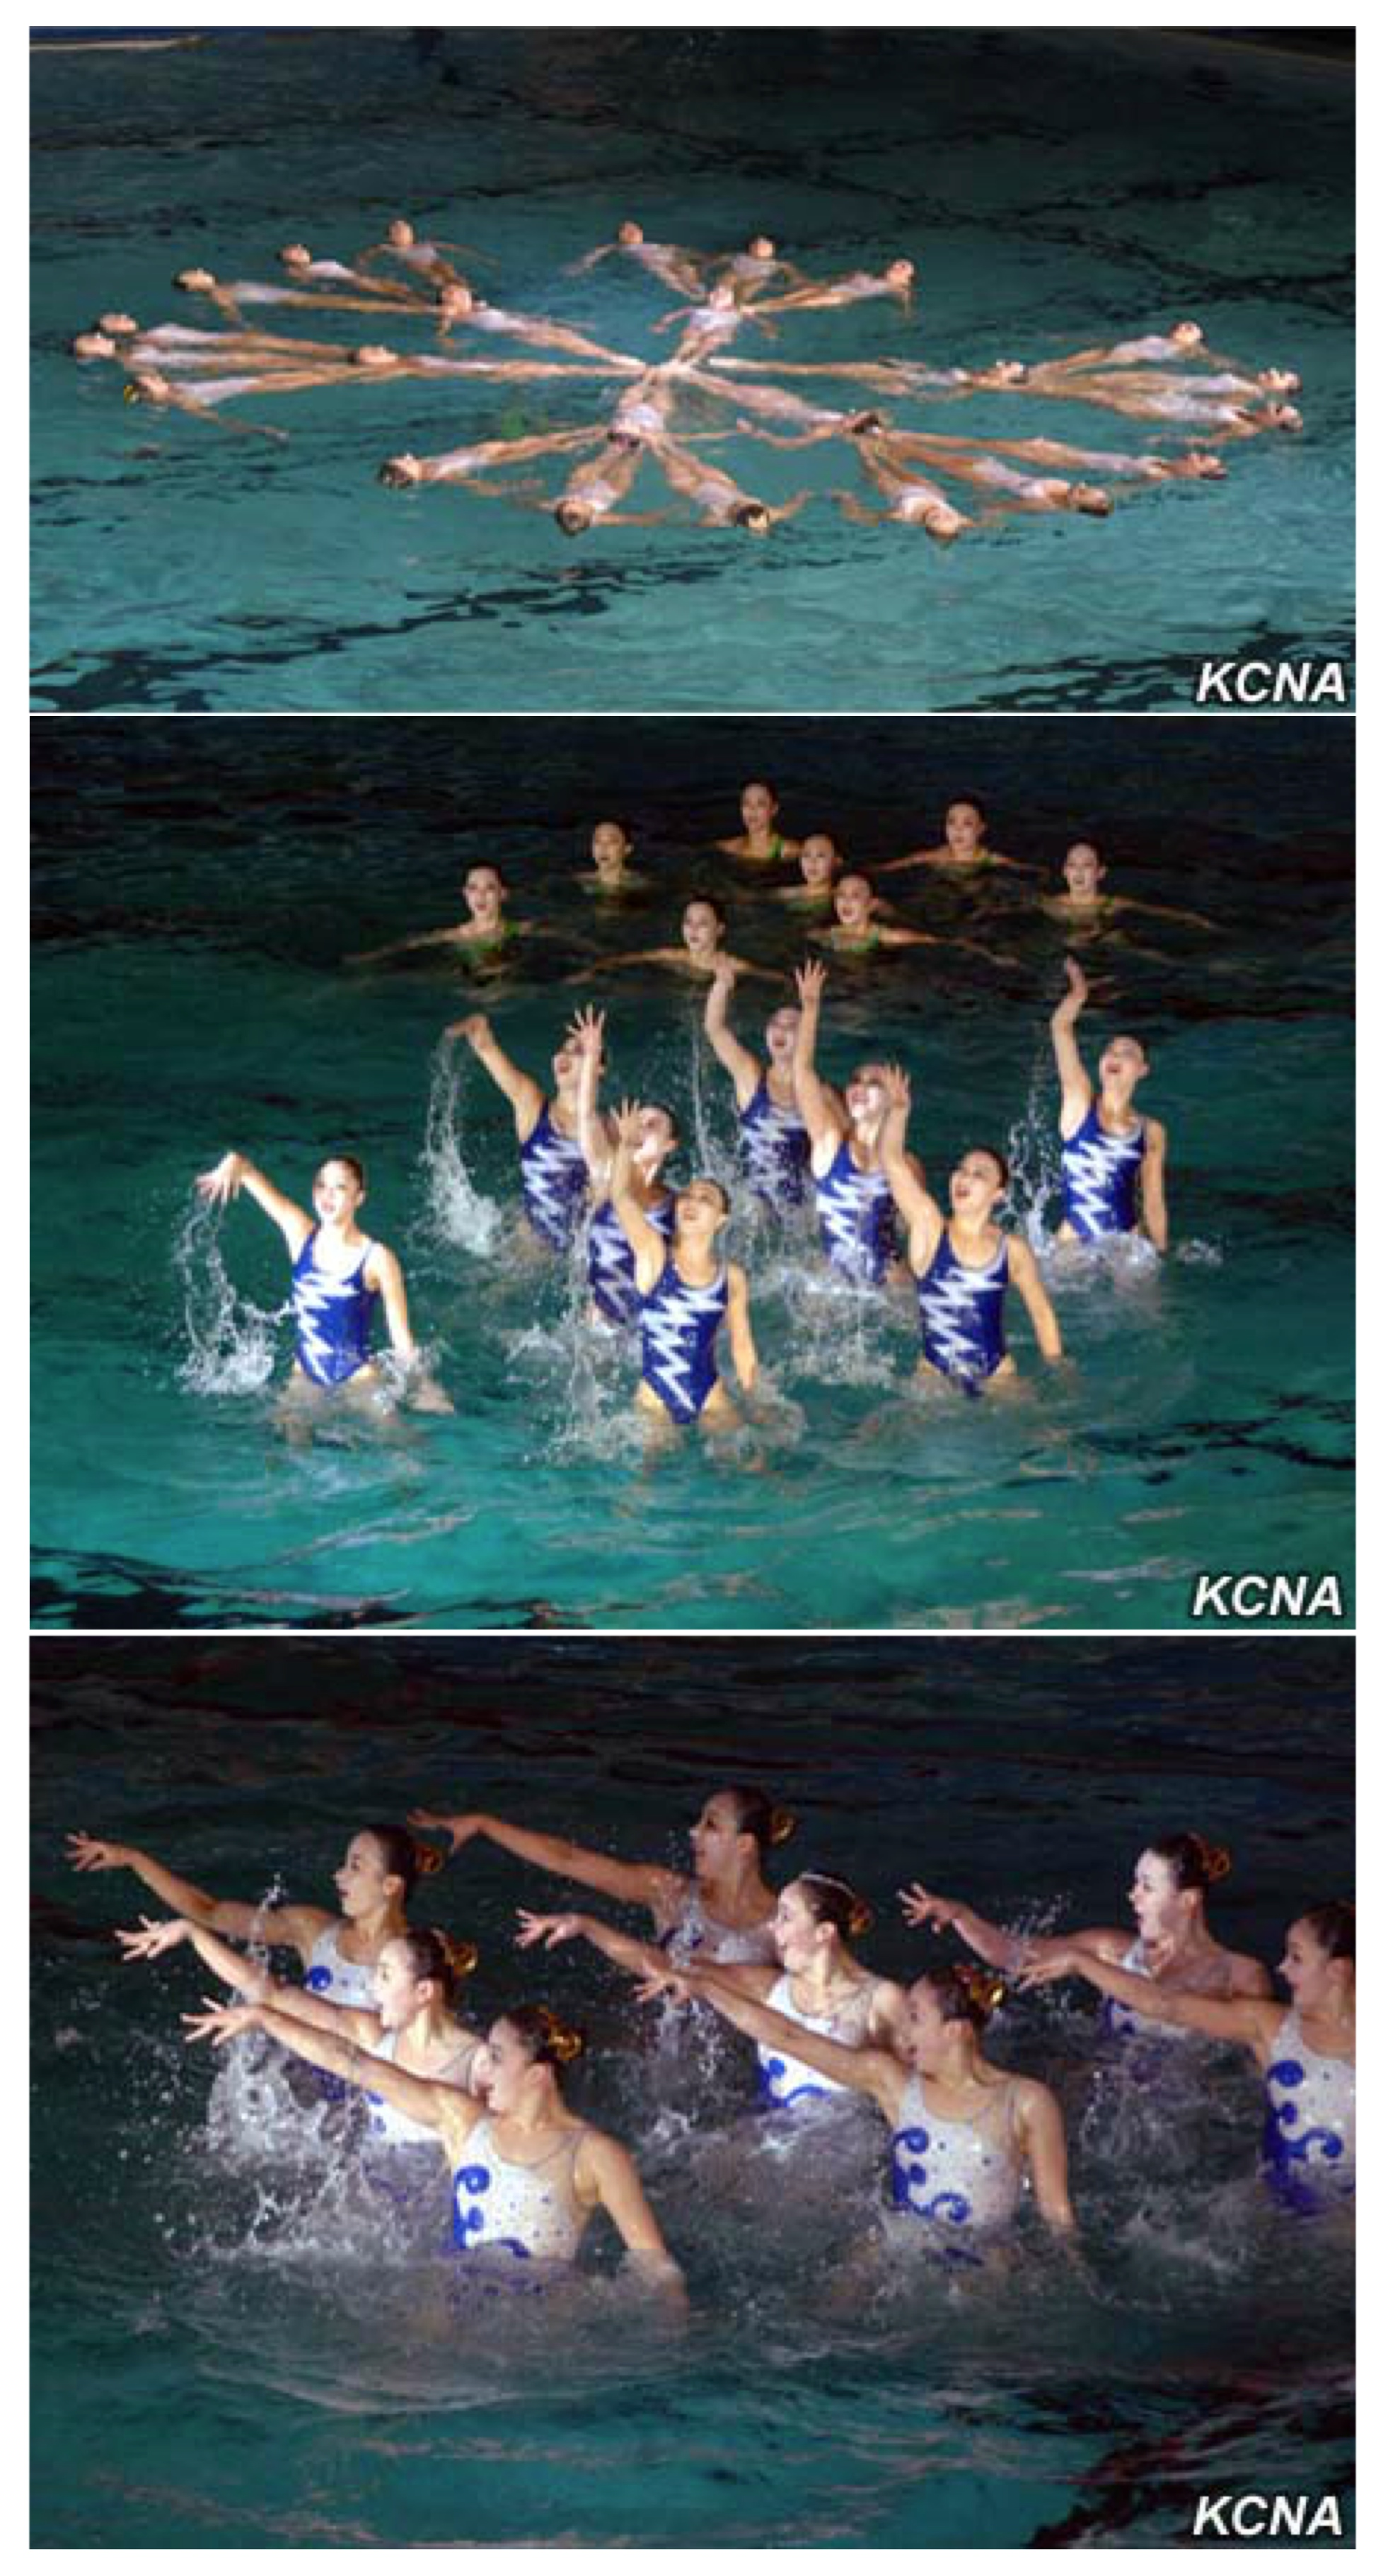 Synchronized swimmers perform at the Ch'angkwang Health Complex in central Pyongyang on February 15, 2016 (Photos: KCNA).